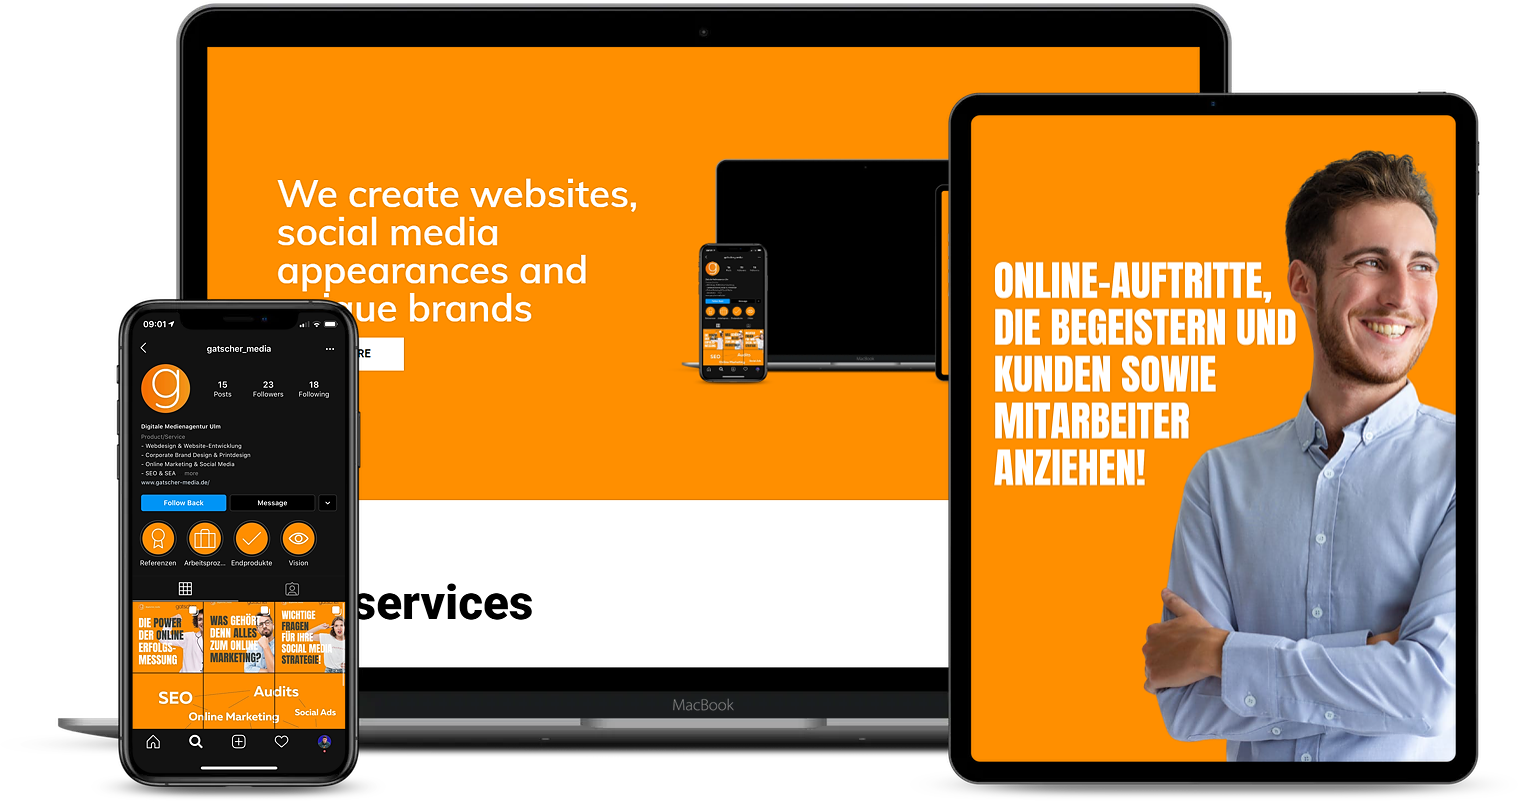 gatscher media Online Marketing Agentur Ulm mockup